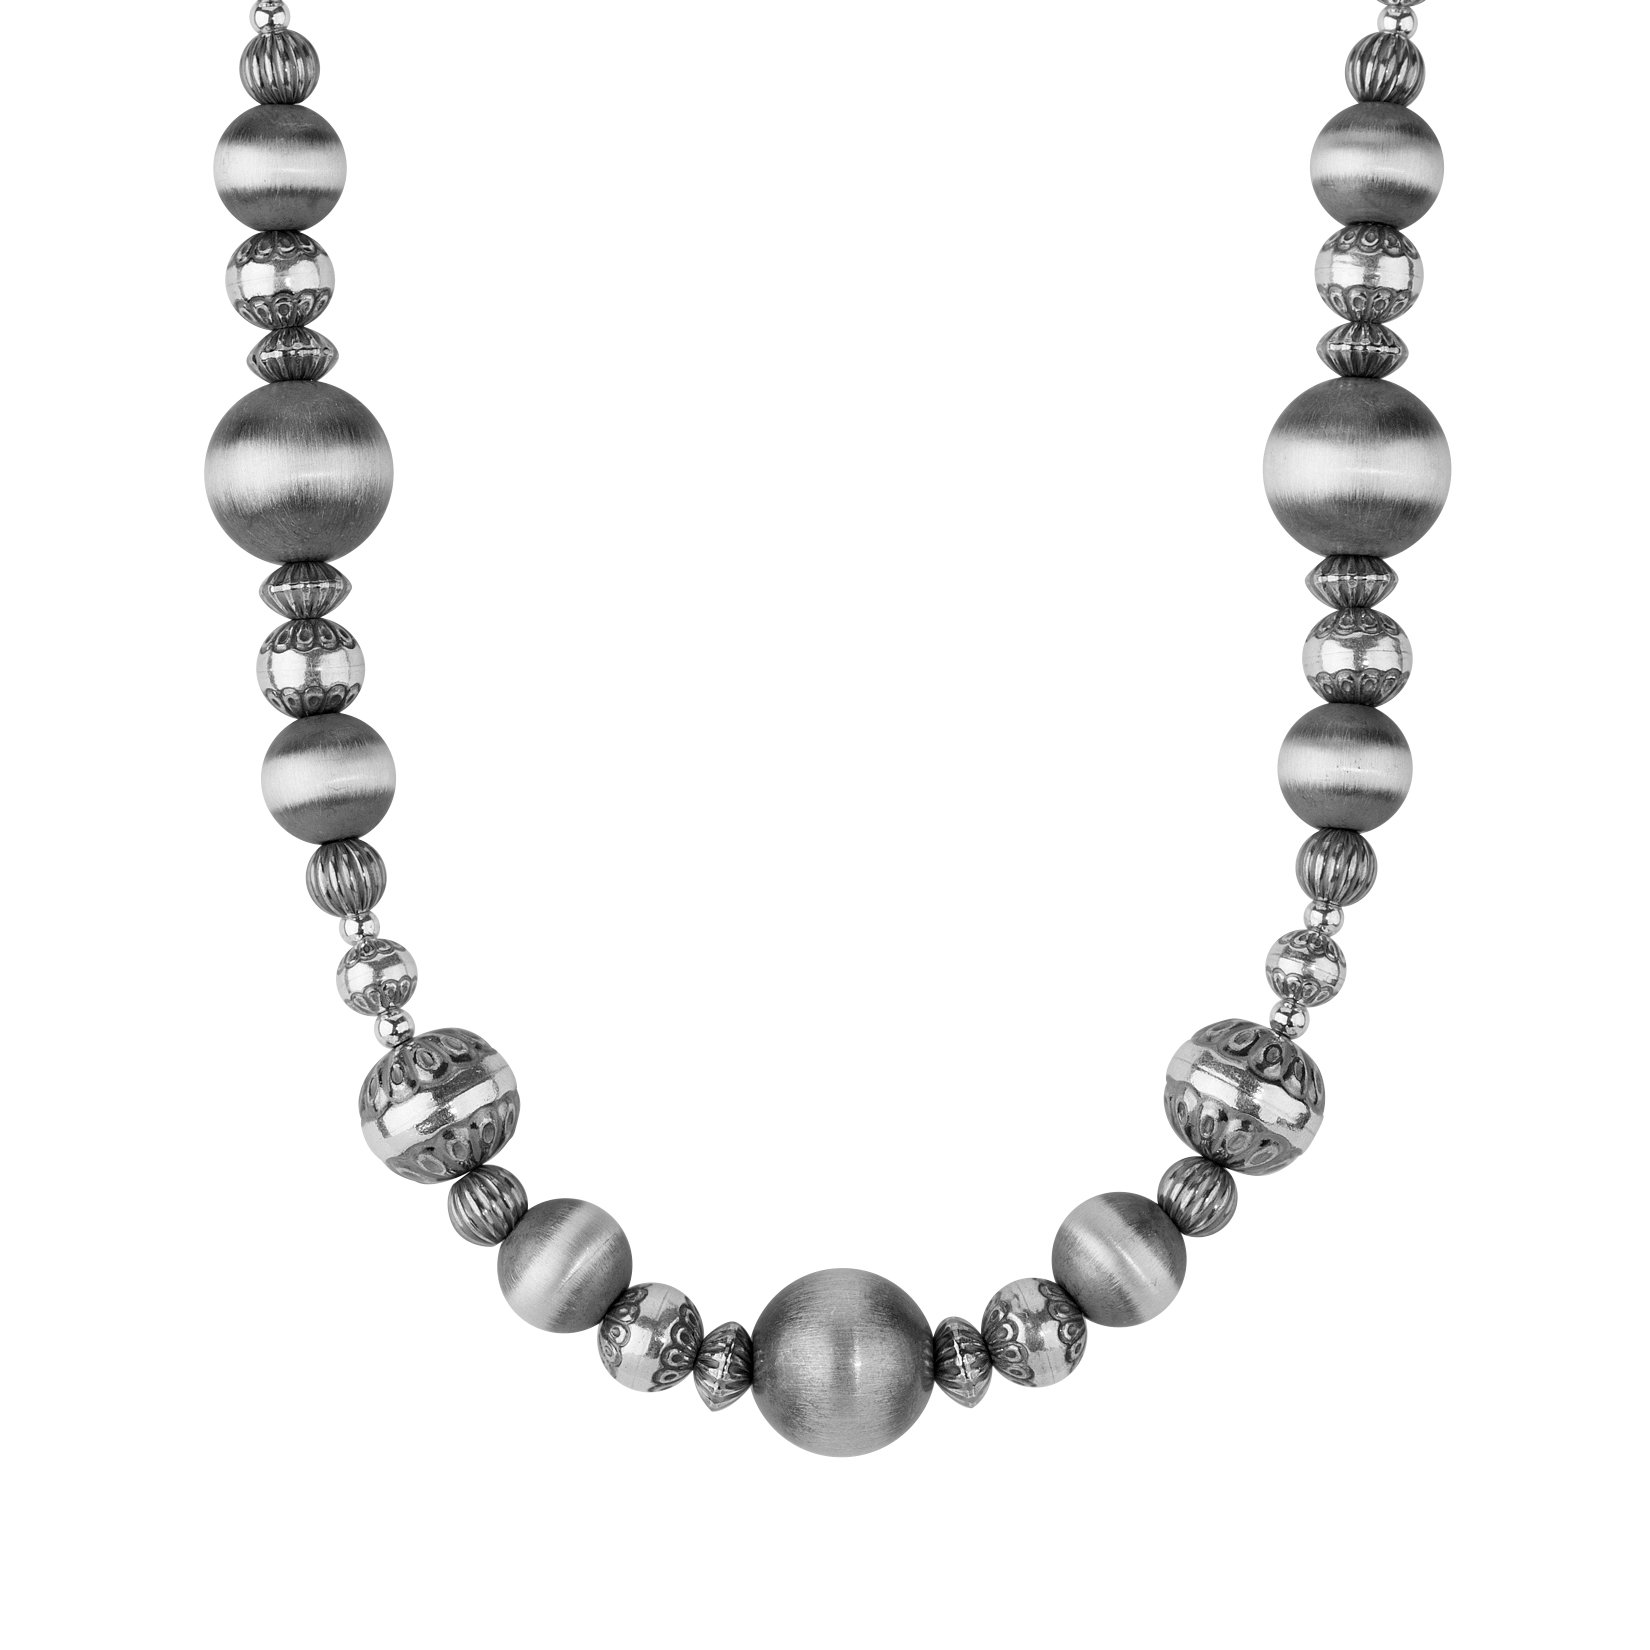 Sterling Silver Stamped Bead Necklace, 21 Inch